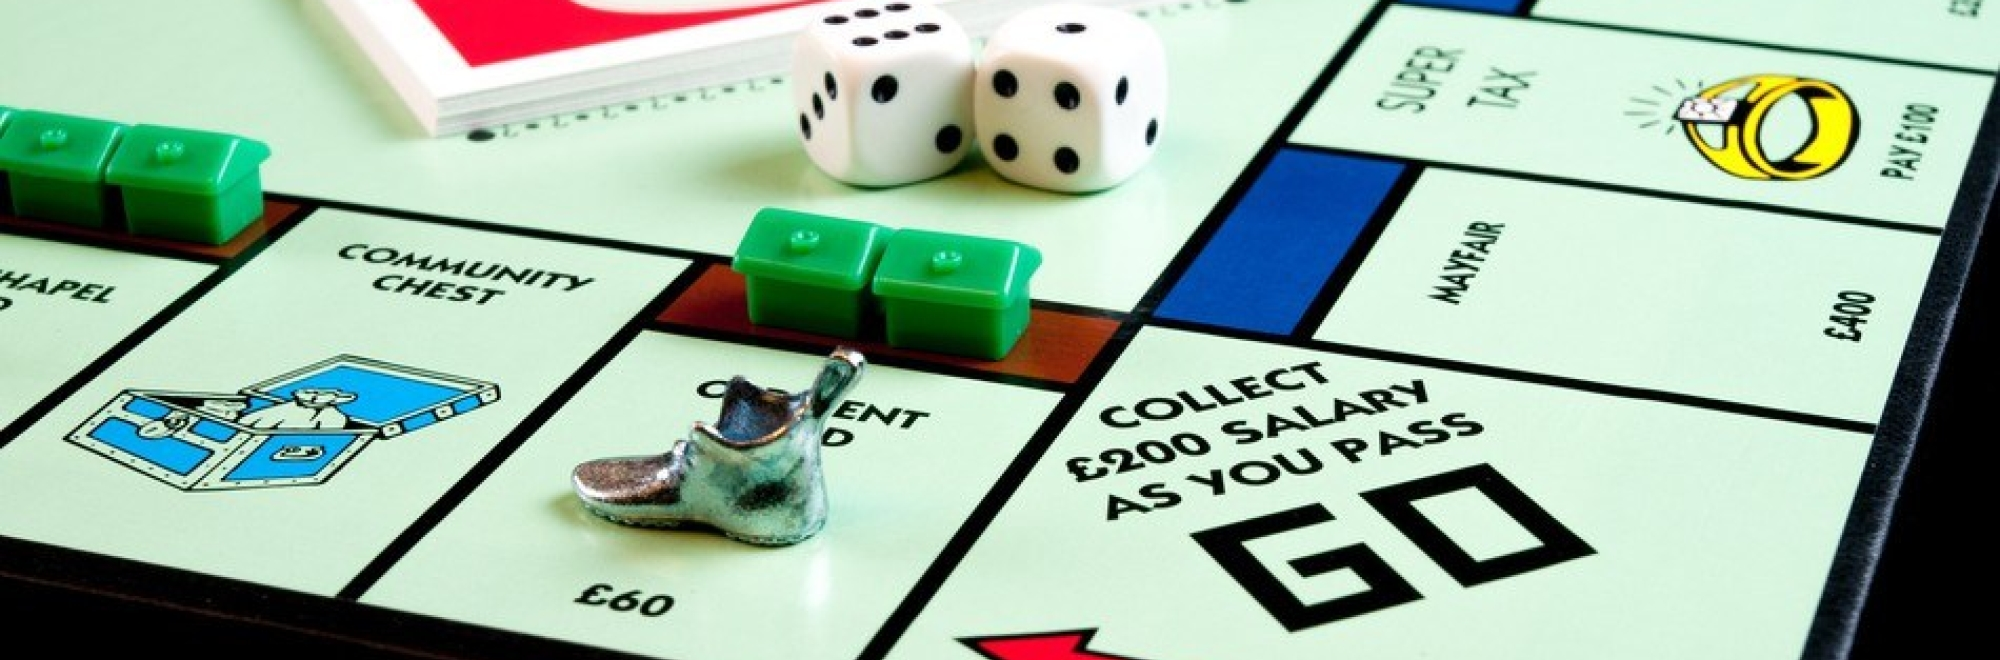 'If Monopoly was real life' provides some light relief in the run-up to Christmas